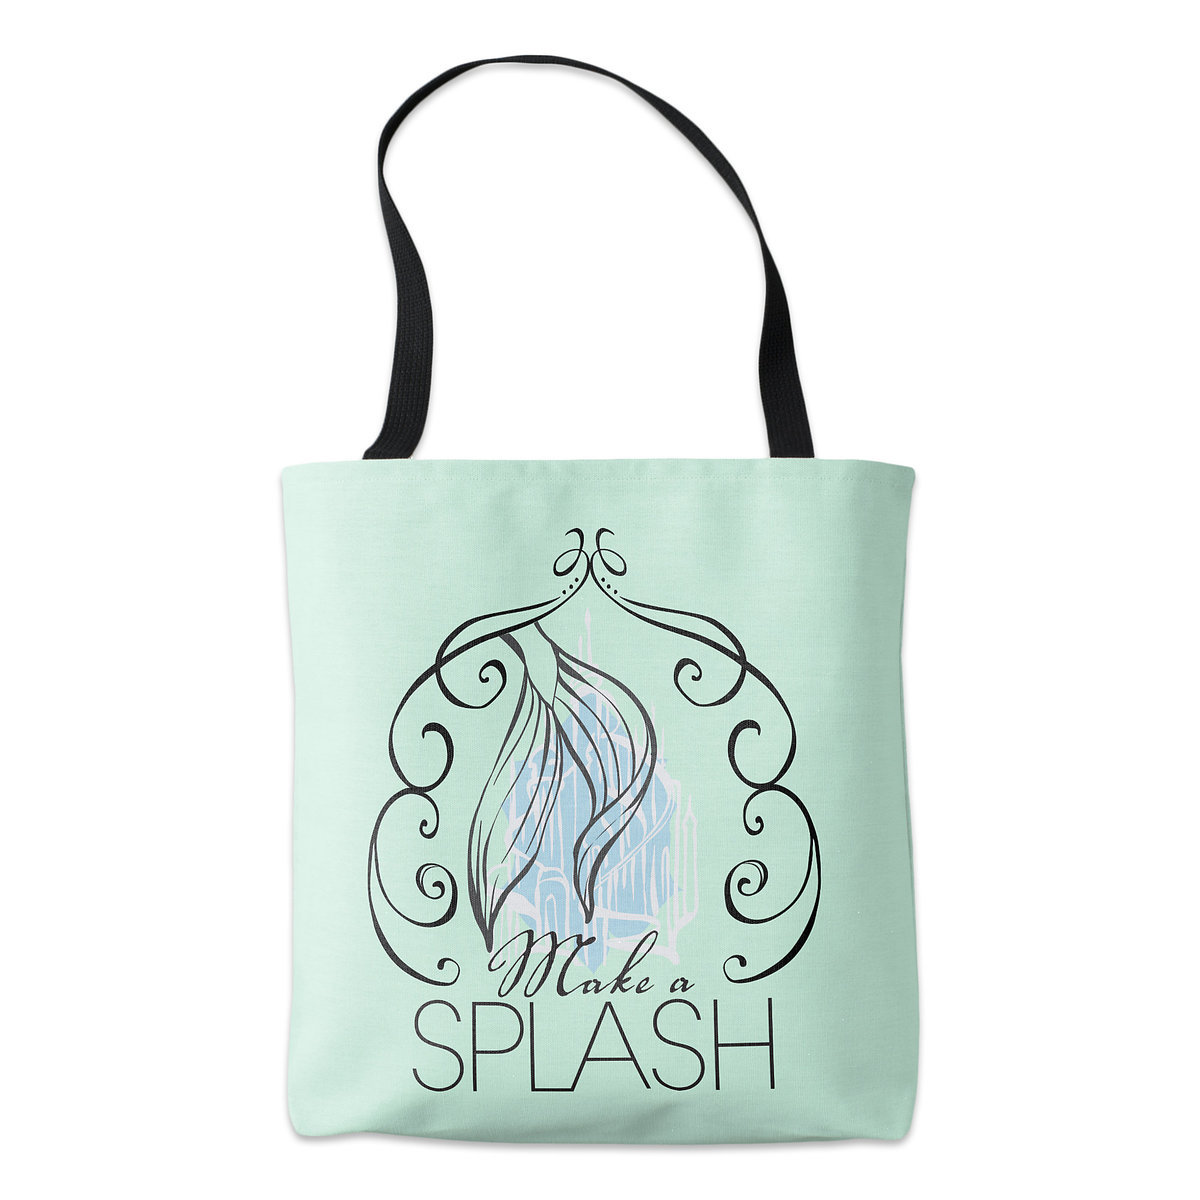 Adorable Tote Bags at shopDisney! 5